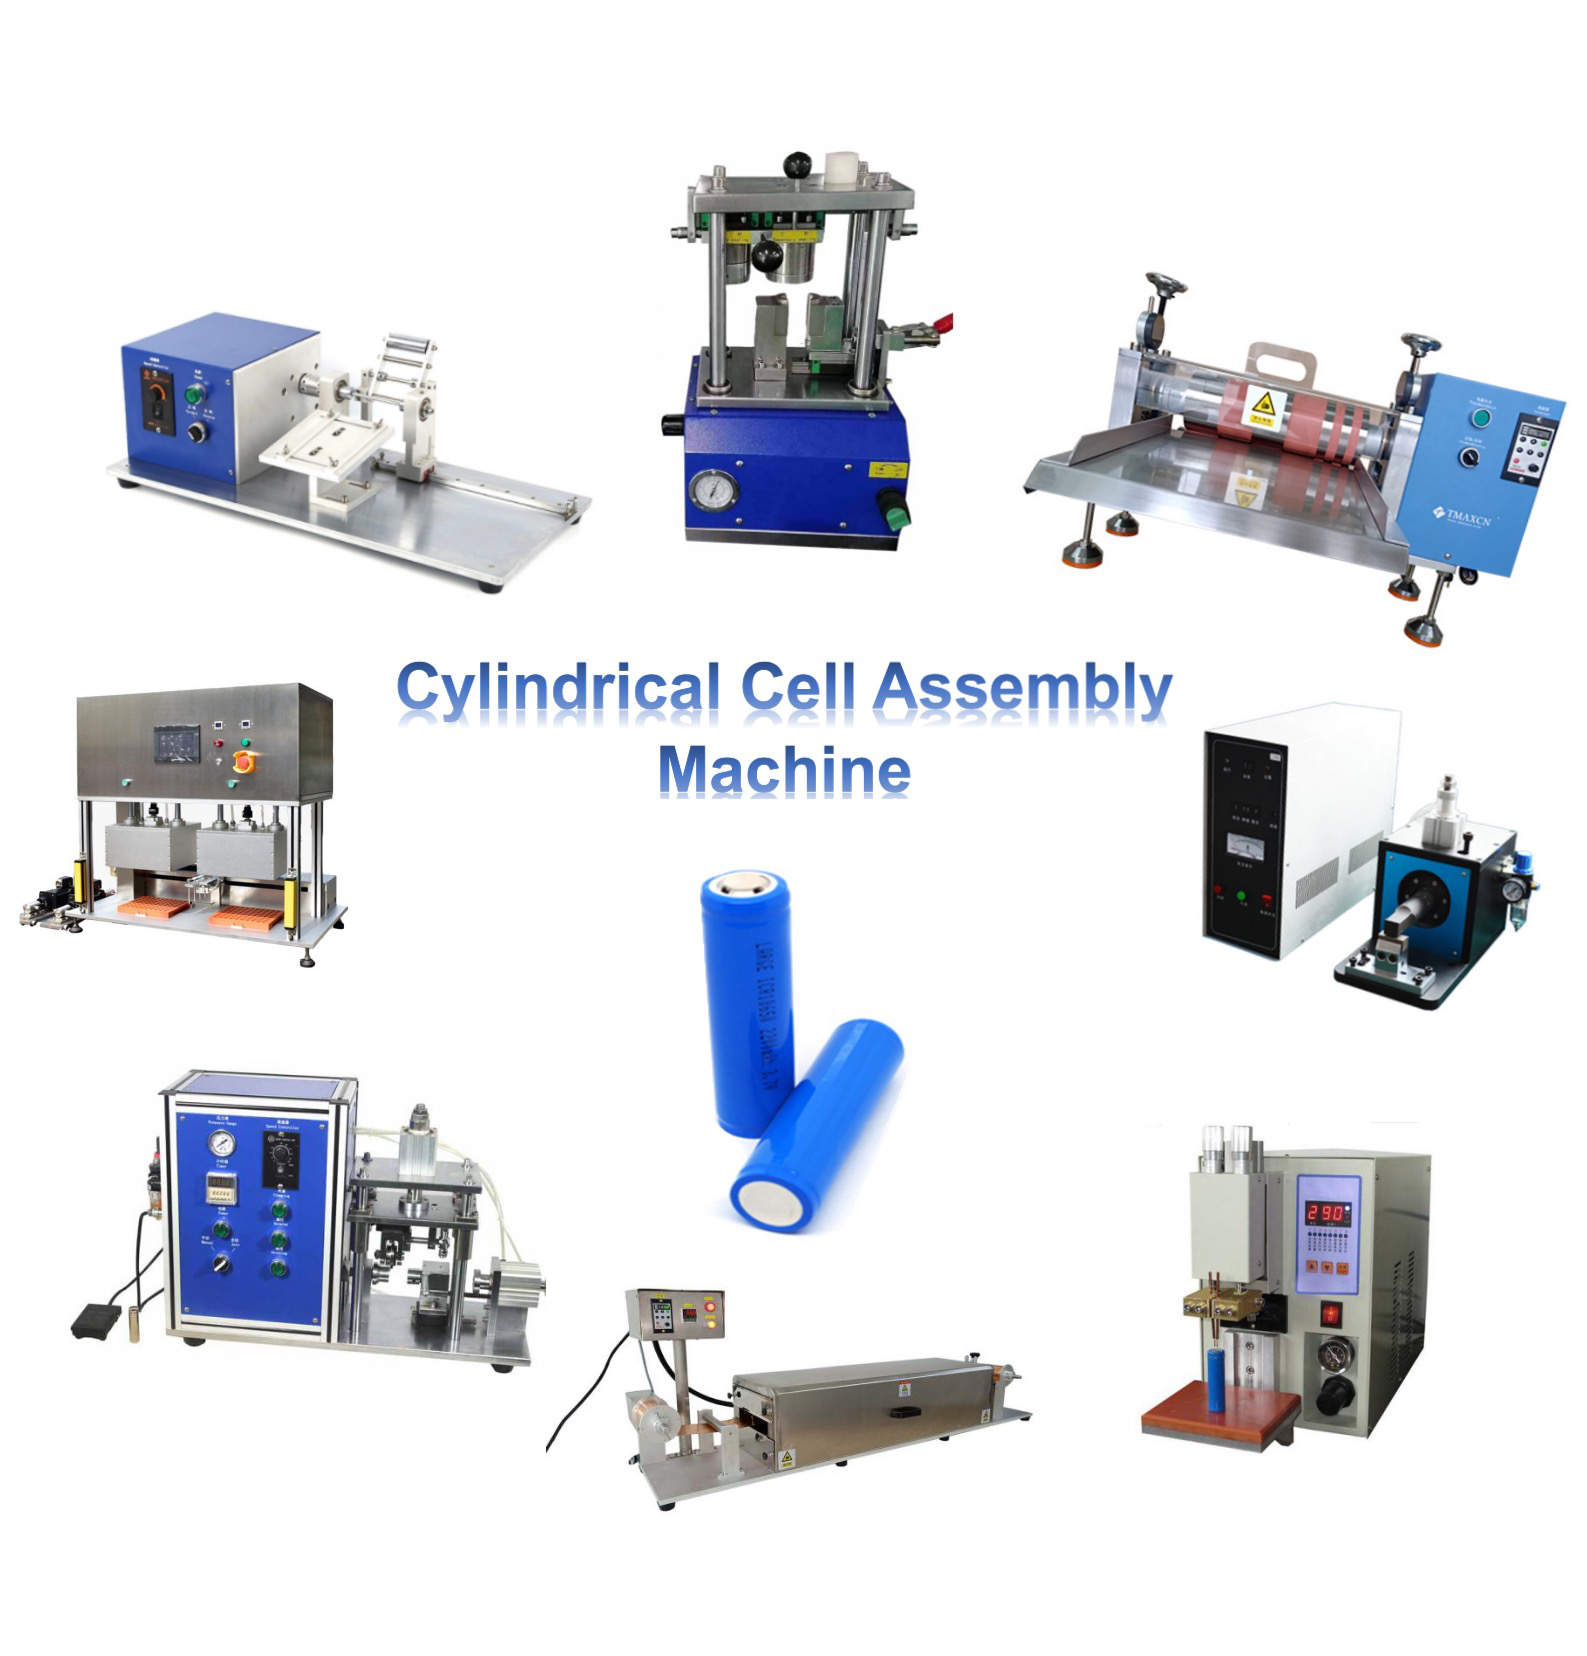 18650 26650 32650 21700 Cell Making Machine Cylindrical Cell Lab Equipment/ Assembly Machine for Li ion Battery Making